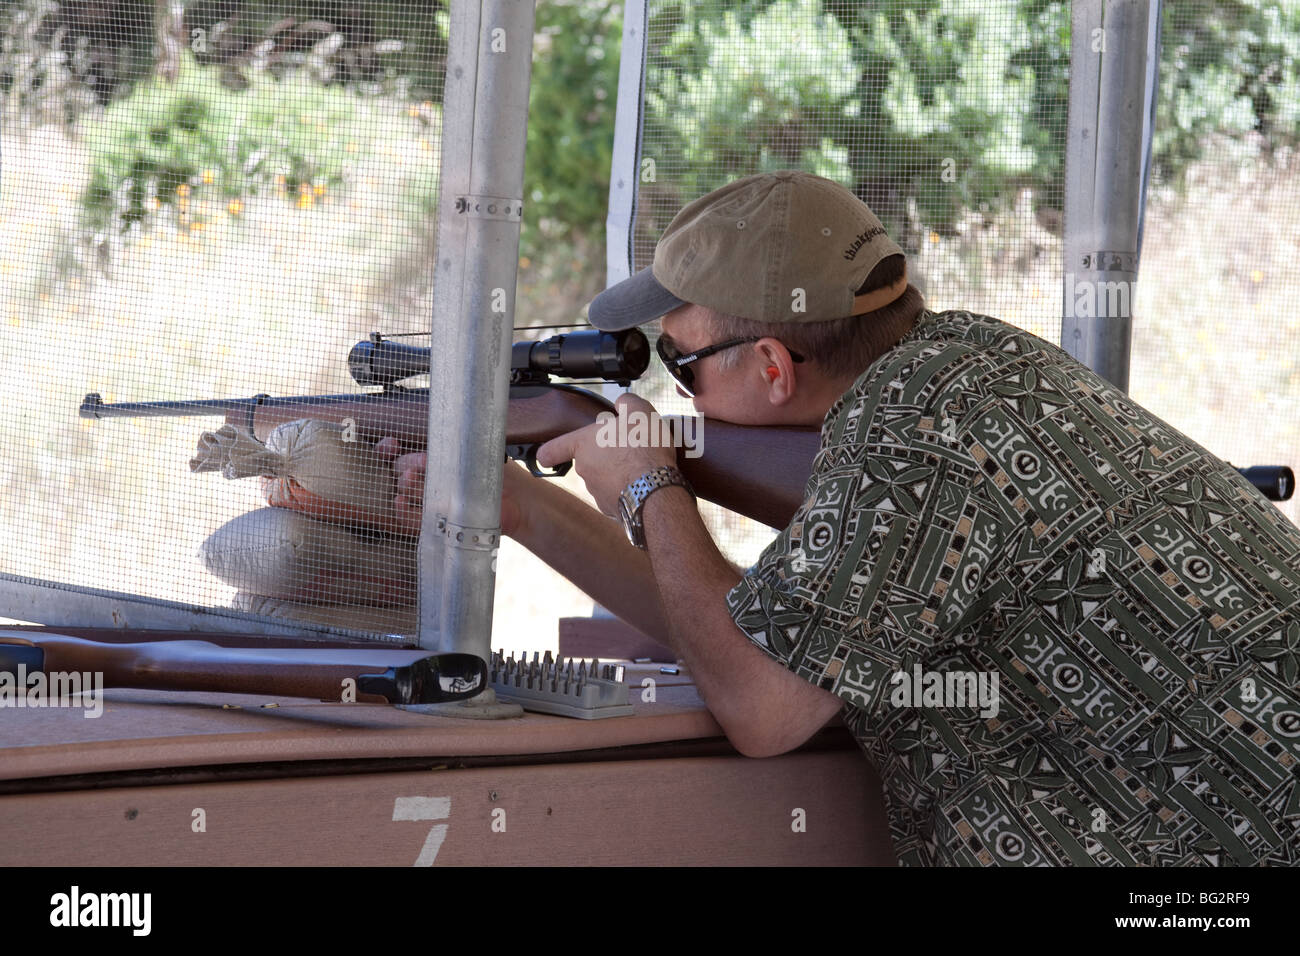 Man resting Ruger 10/22 rifle on sandbags as he practices target shooting at the Los Altos Rod and Gun Club outdoor - Stock Image